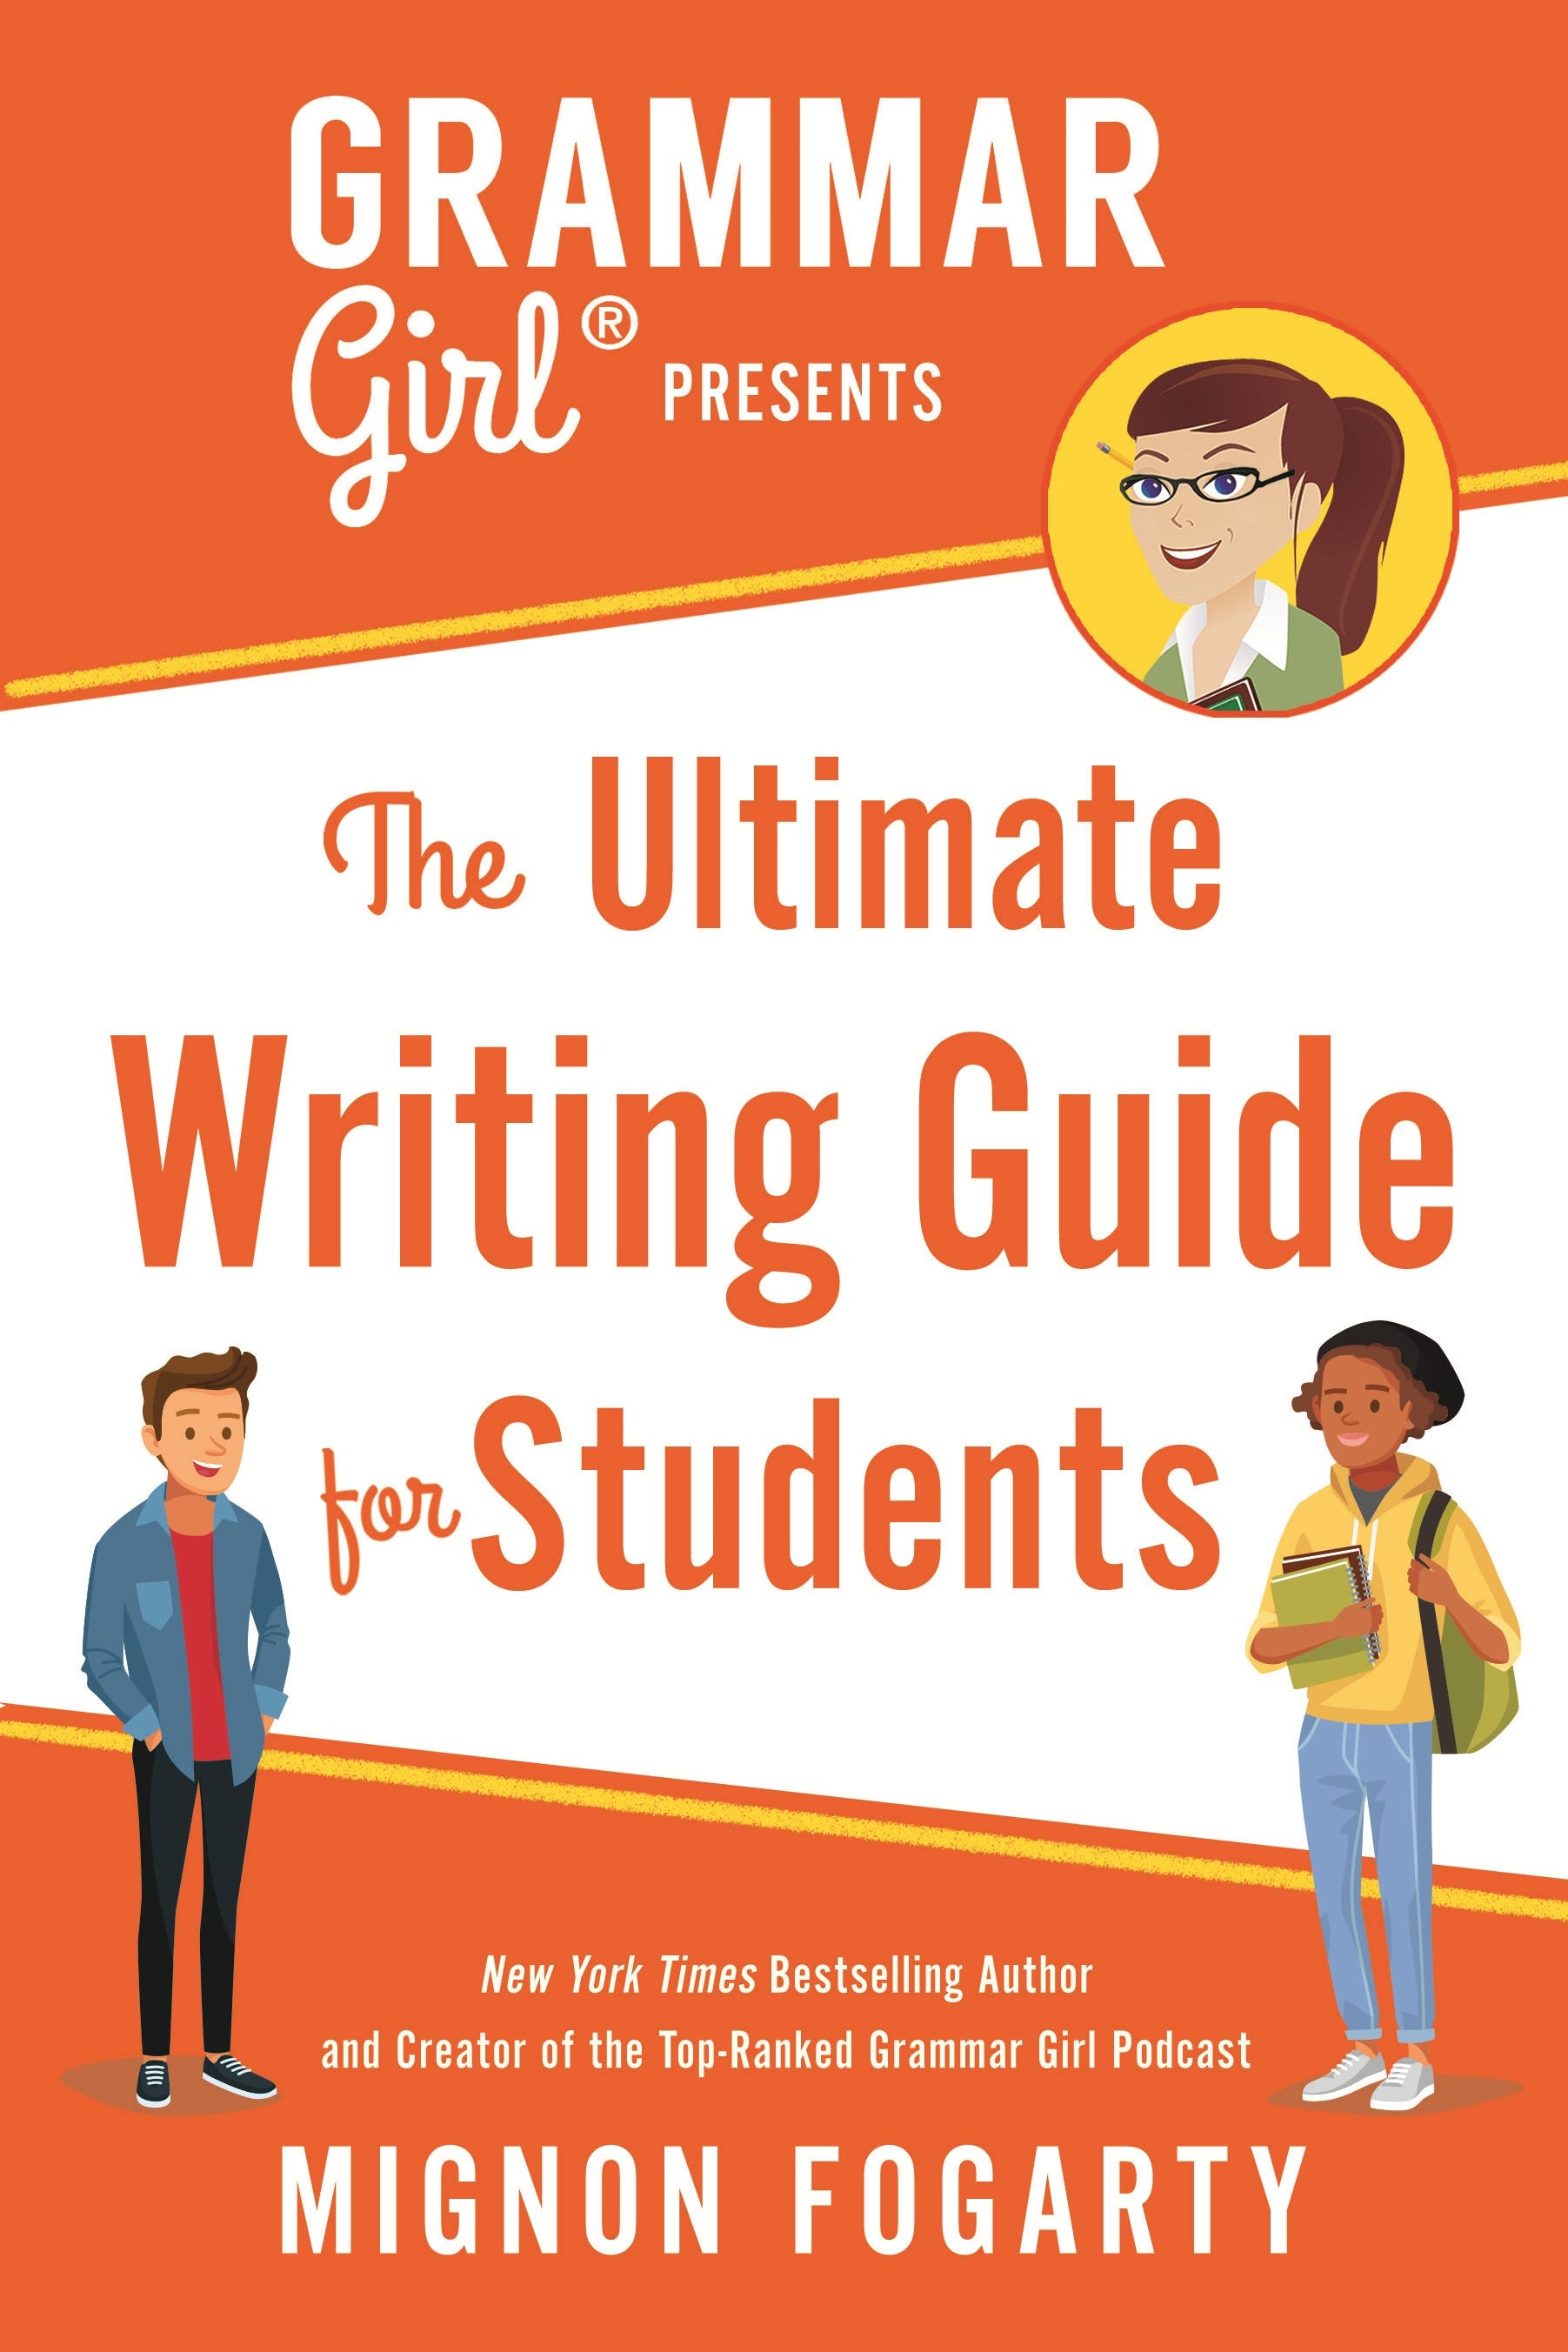 Image of Grammar Girl Presents the Ultimate Writing Guide for Students